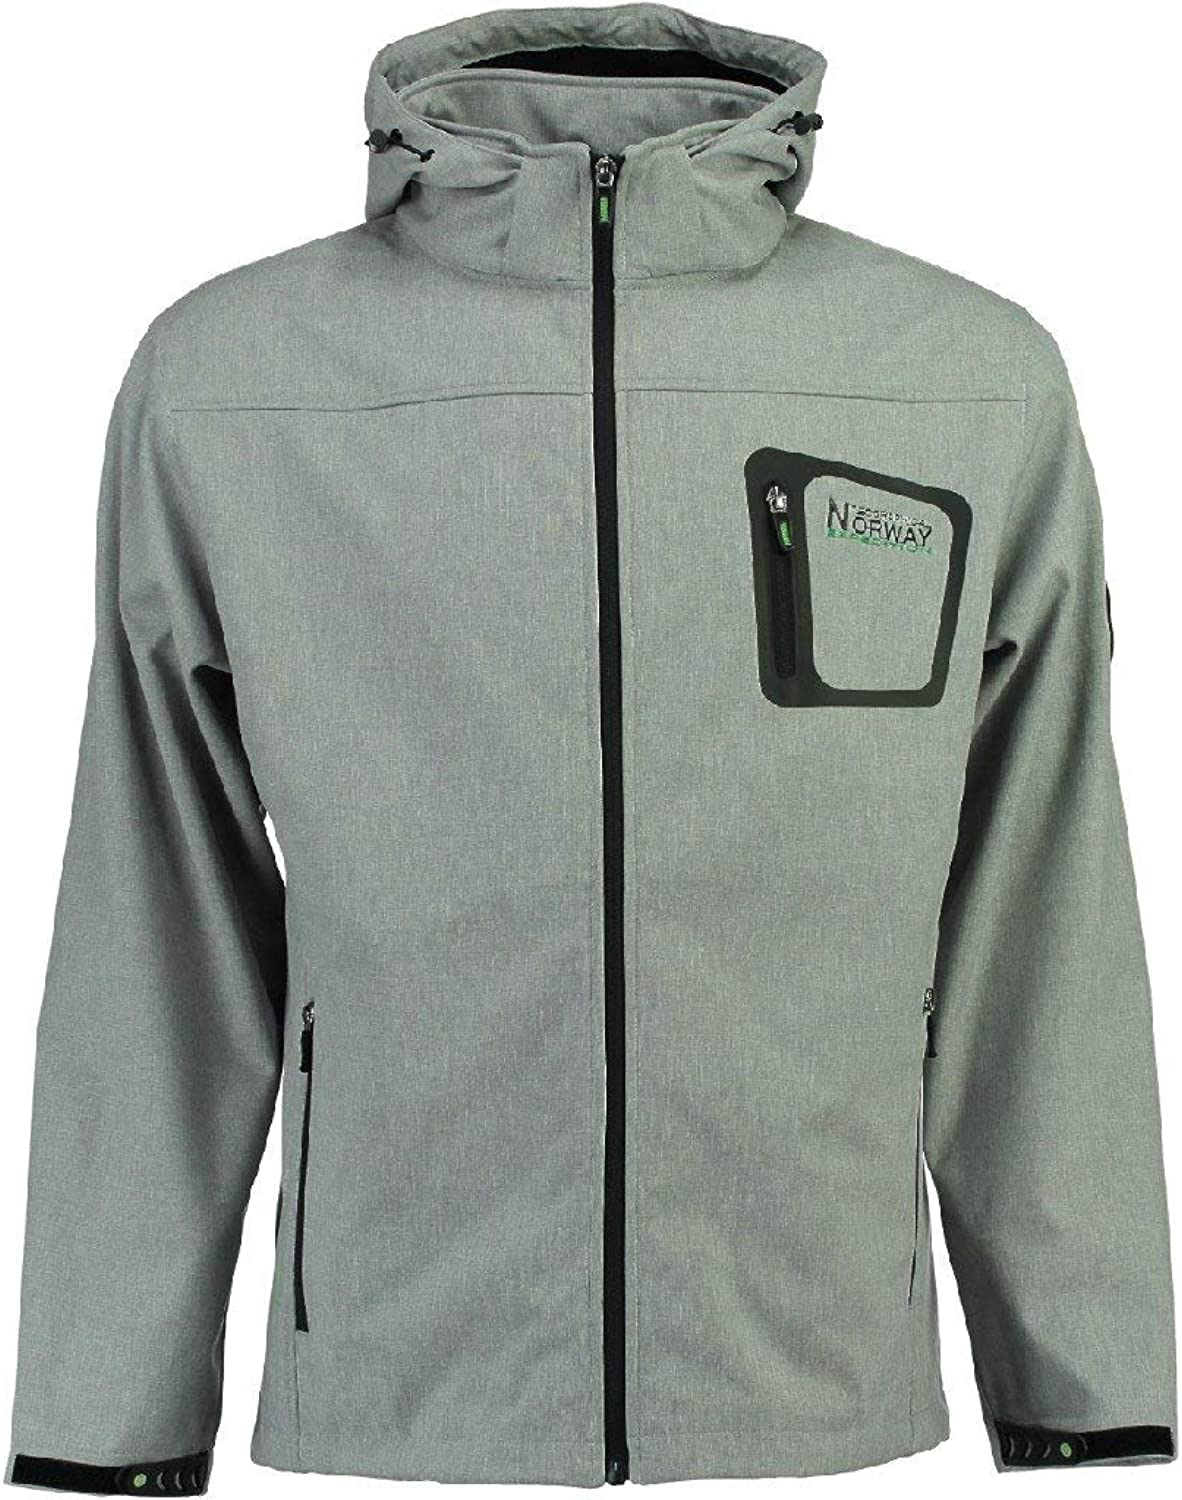 Geographical Norway Softshell Jacket  TEXSHELL Light Grey